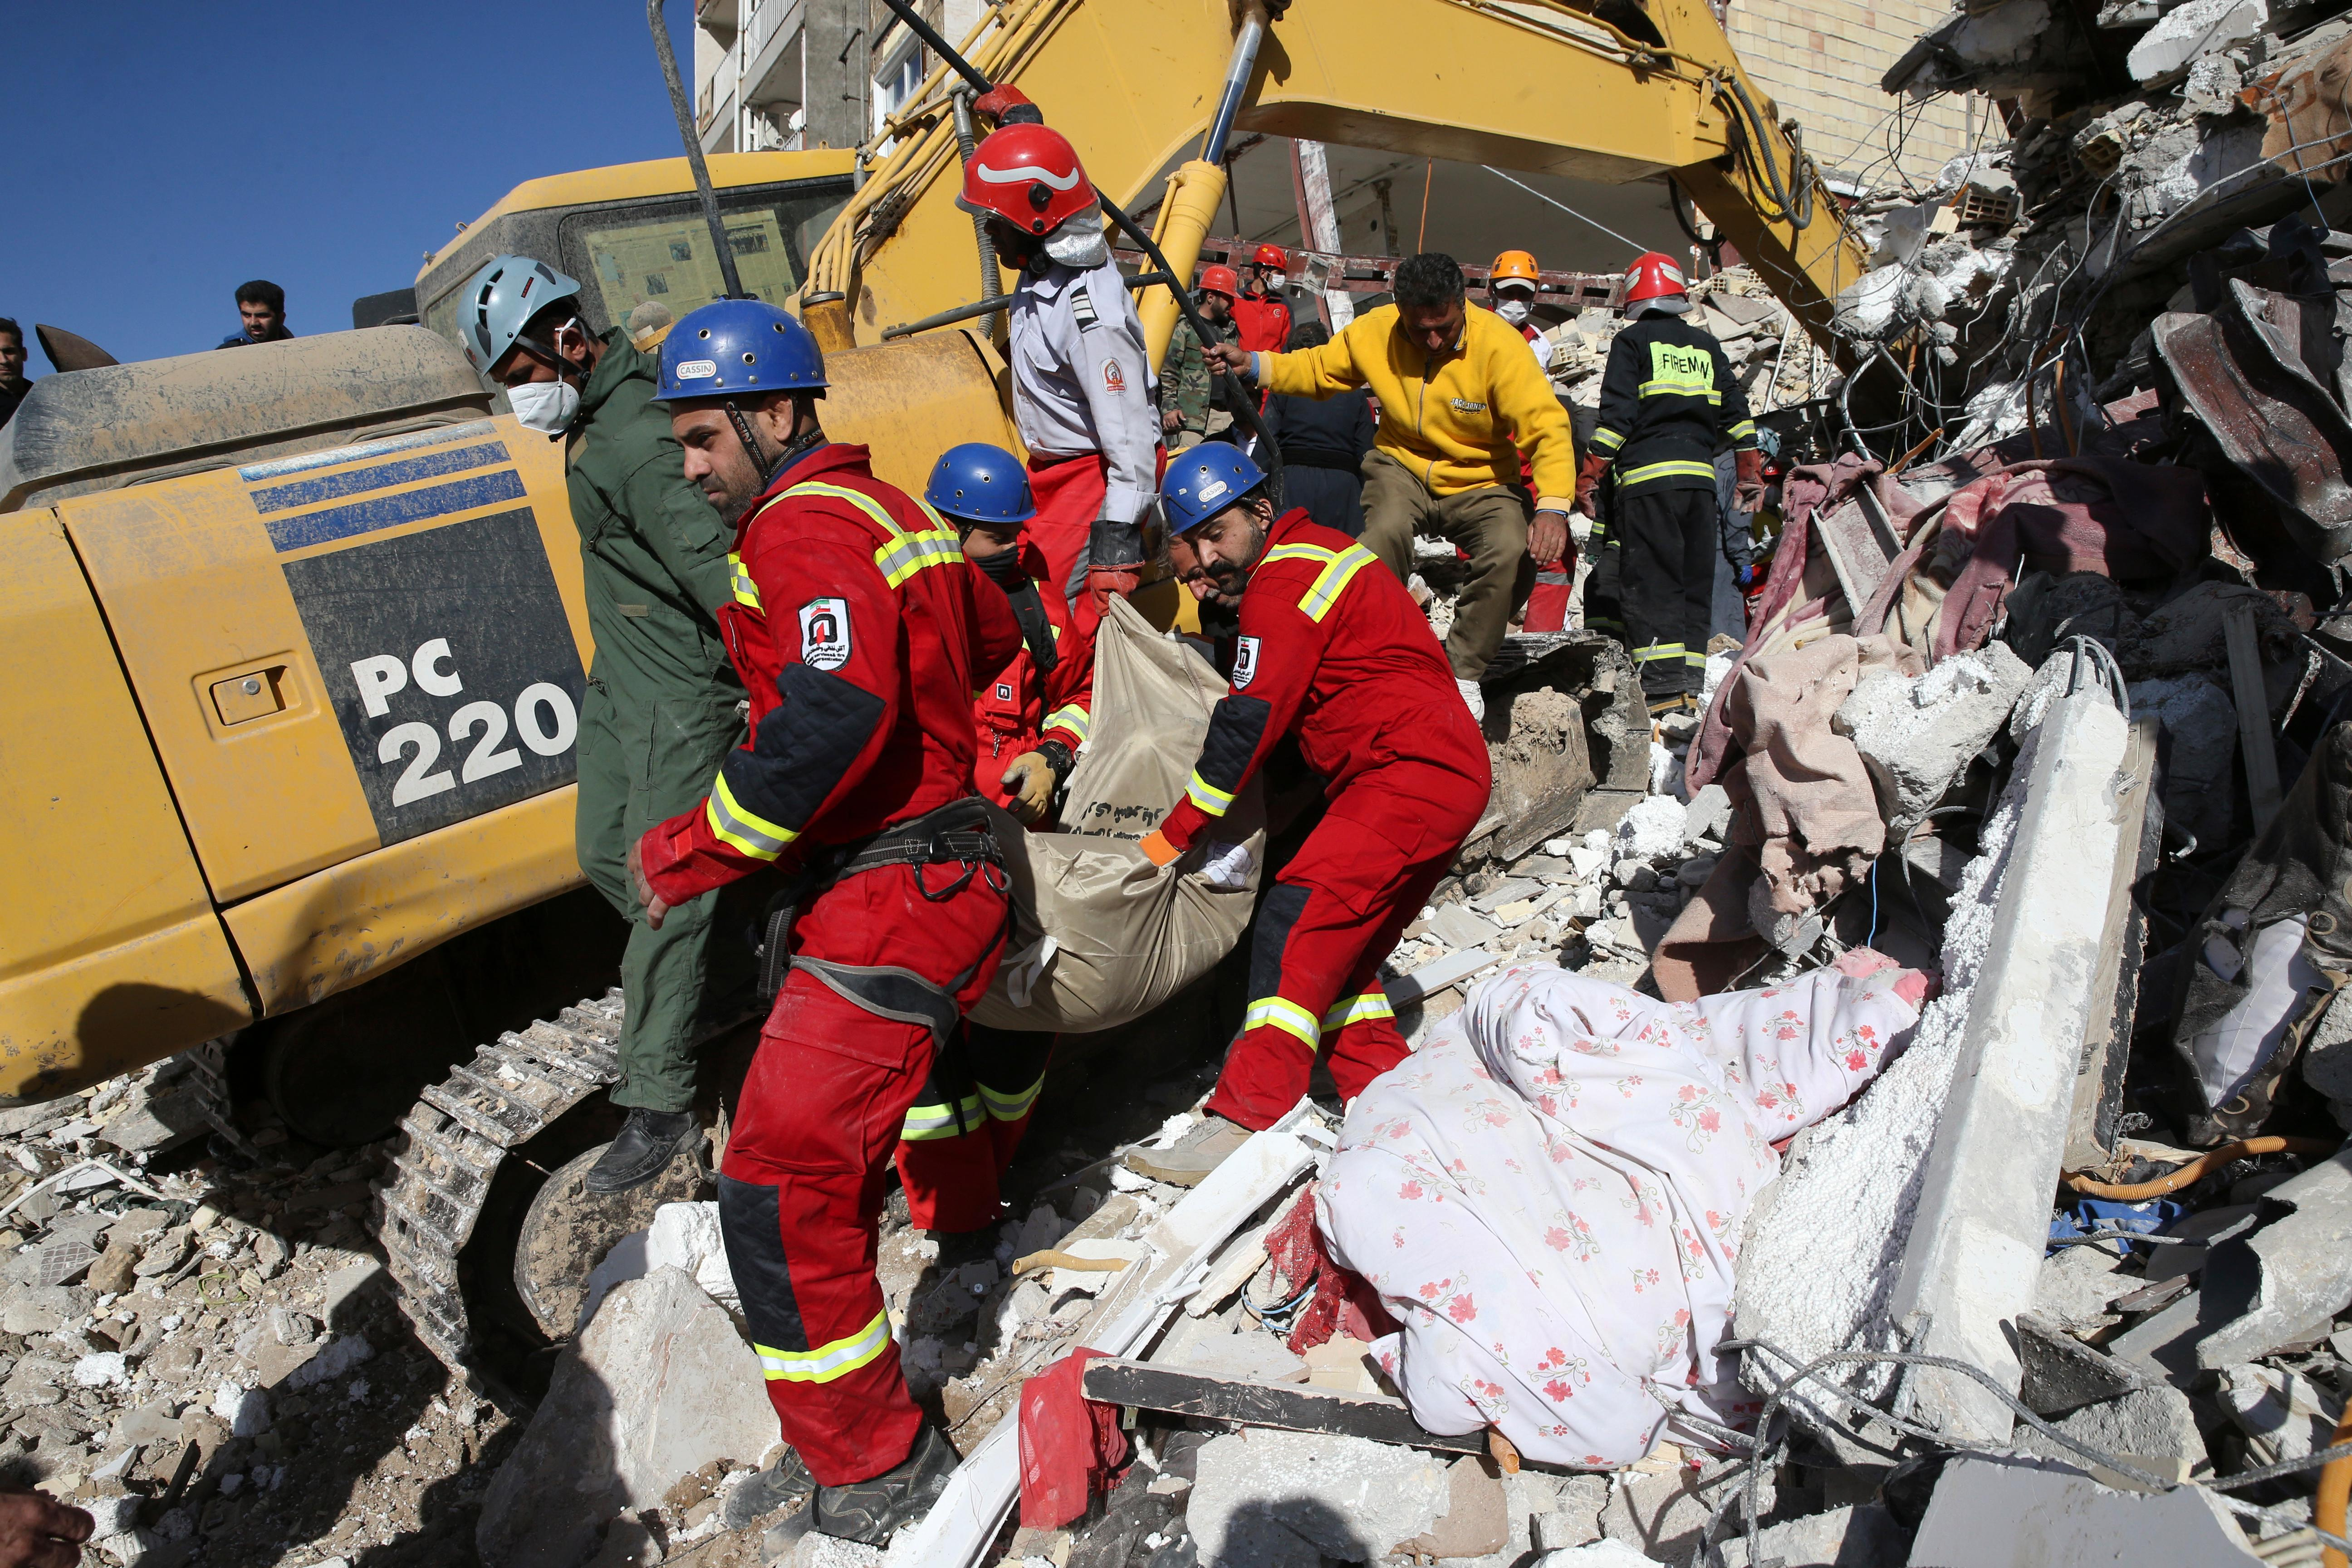 Rescuers carry away the body of an earthquake victim in Sarpol-e-Zahab in western Iran, Tuesday, Nov. 14, 2017. Rescuers are digging through the debris of buildings felled by the Sunday earthquake that killed more than four hundreds of people in the border region of Iran and Iraq. (AP Photo/Vahid Salemi)